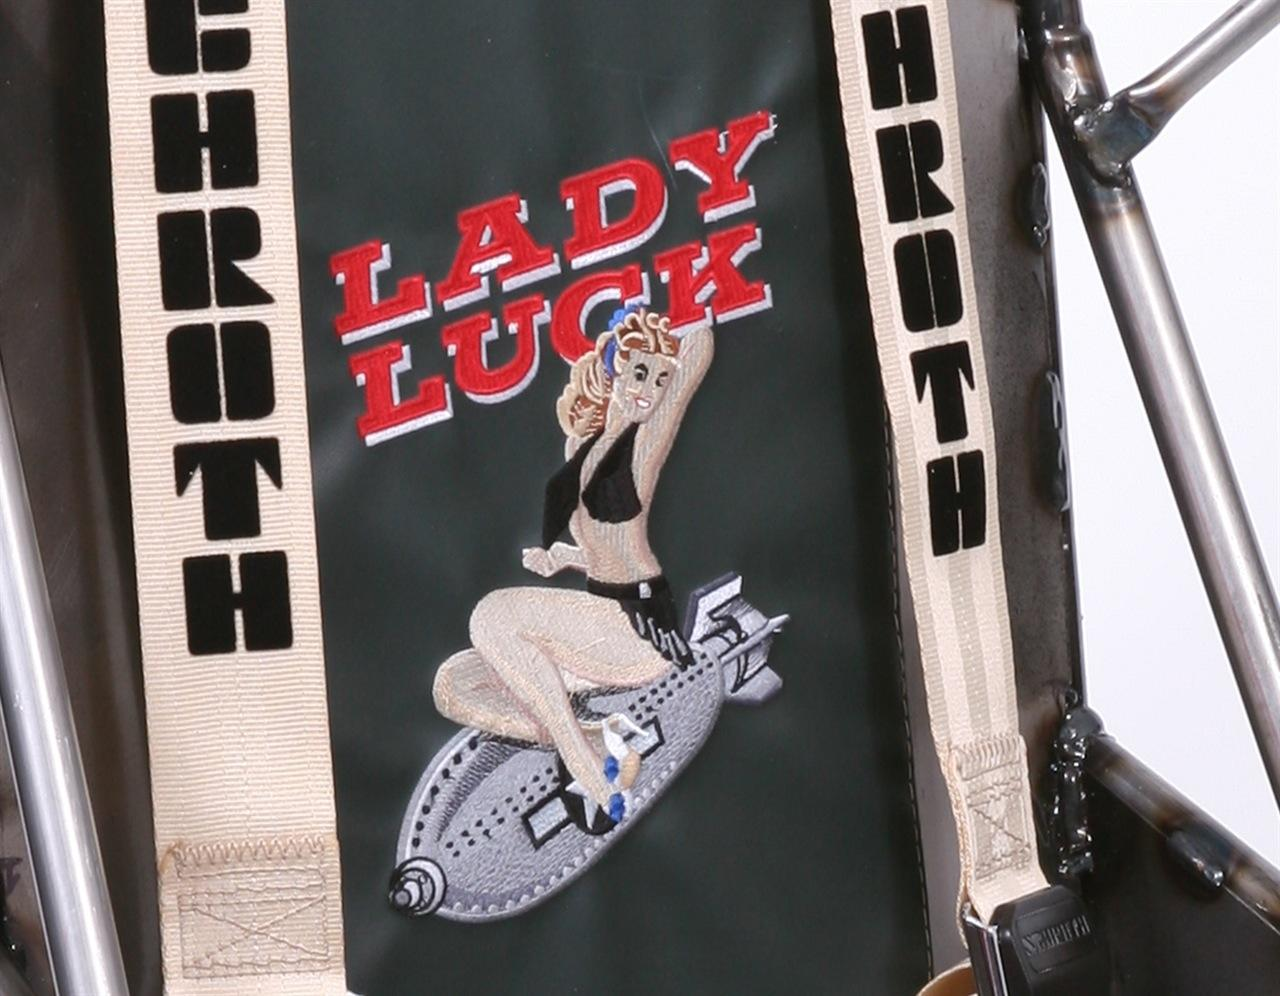 Lady Luck Racing Seat Design